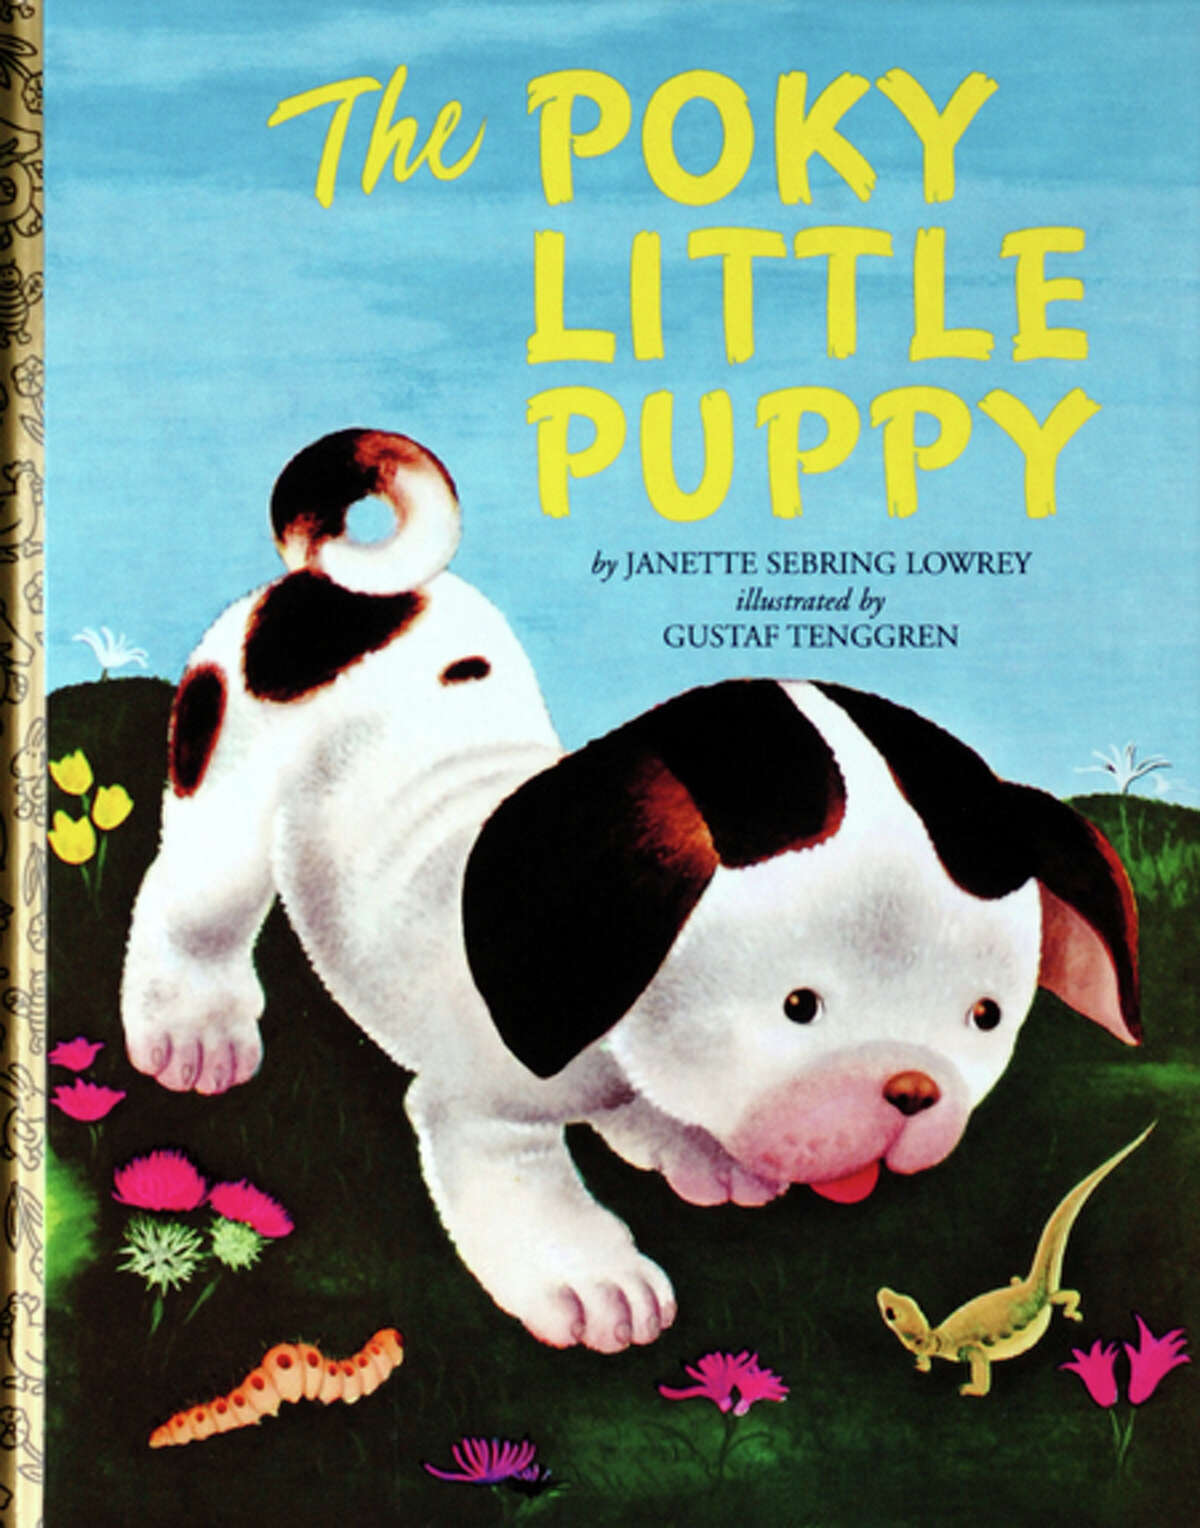 The Pokey Little Puppy was written by Janette Sebring Lowrey.